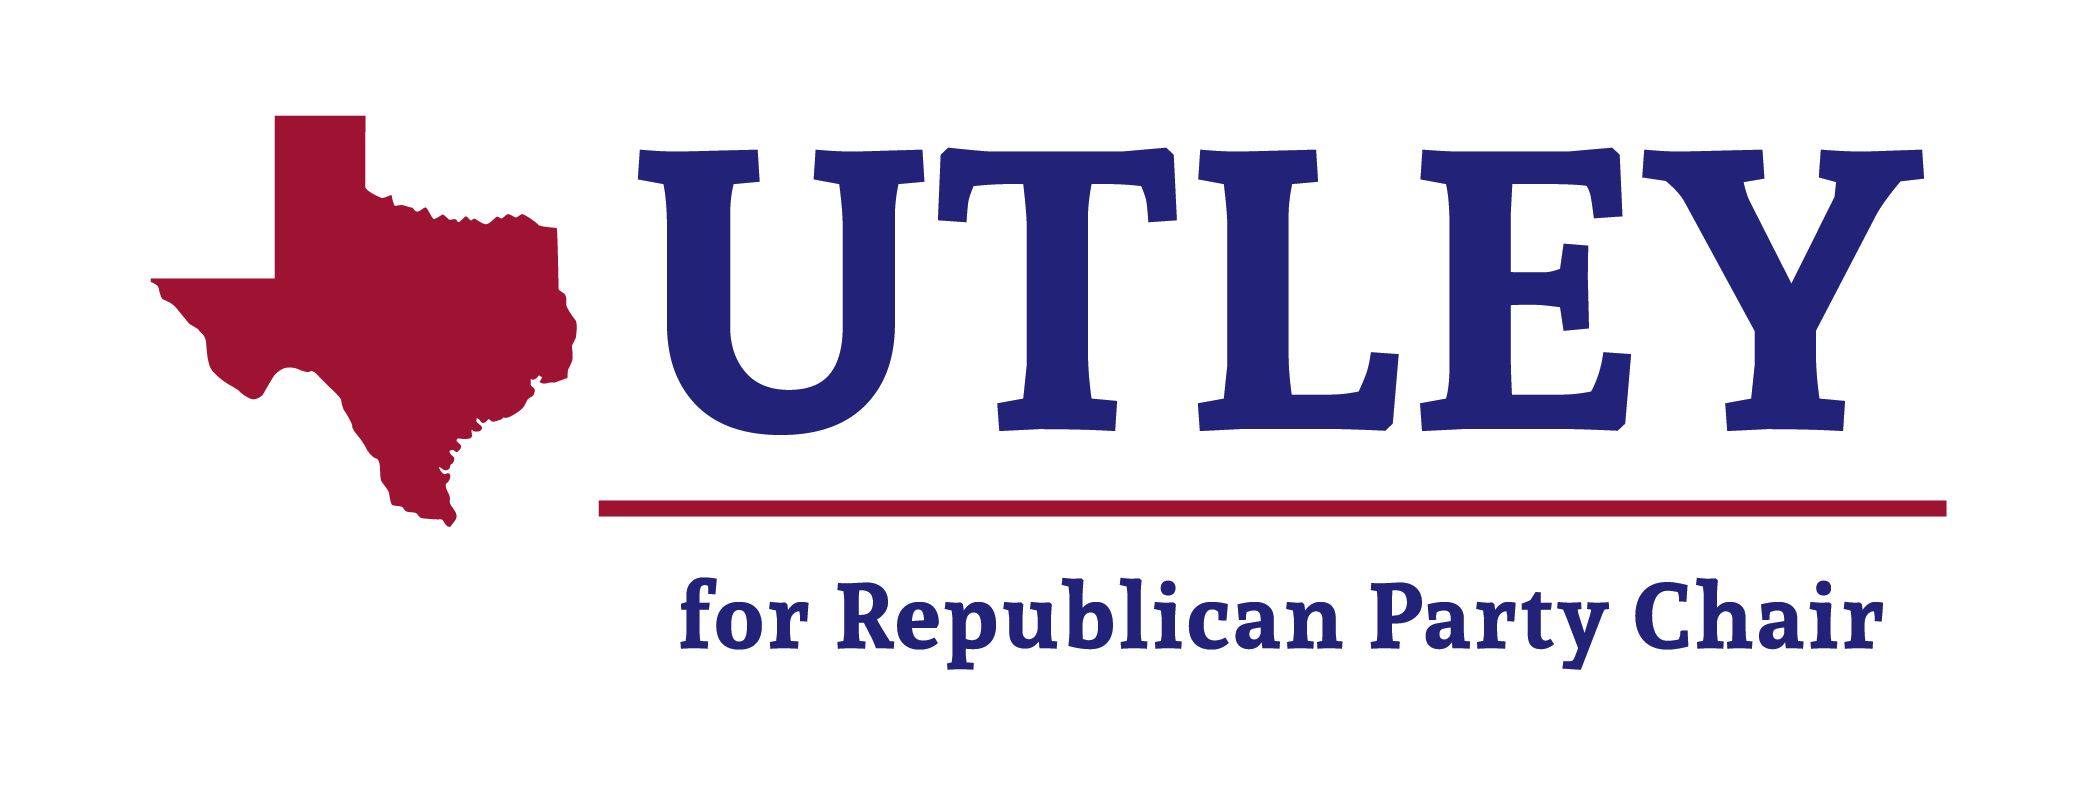 Utley for Republican Party Chair